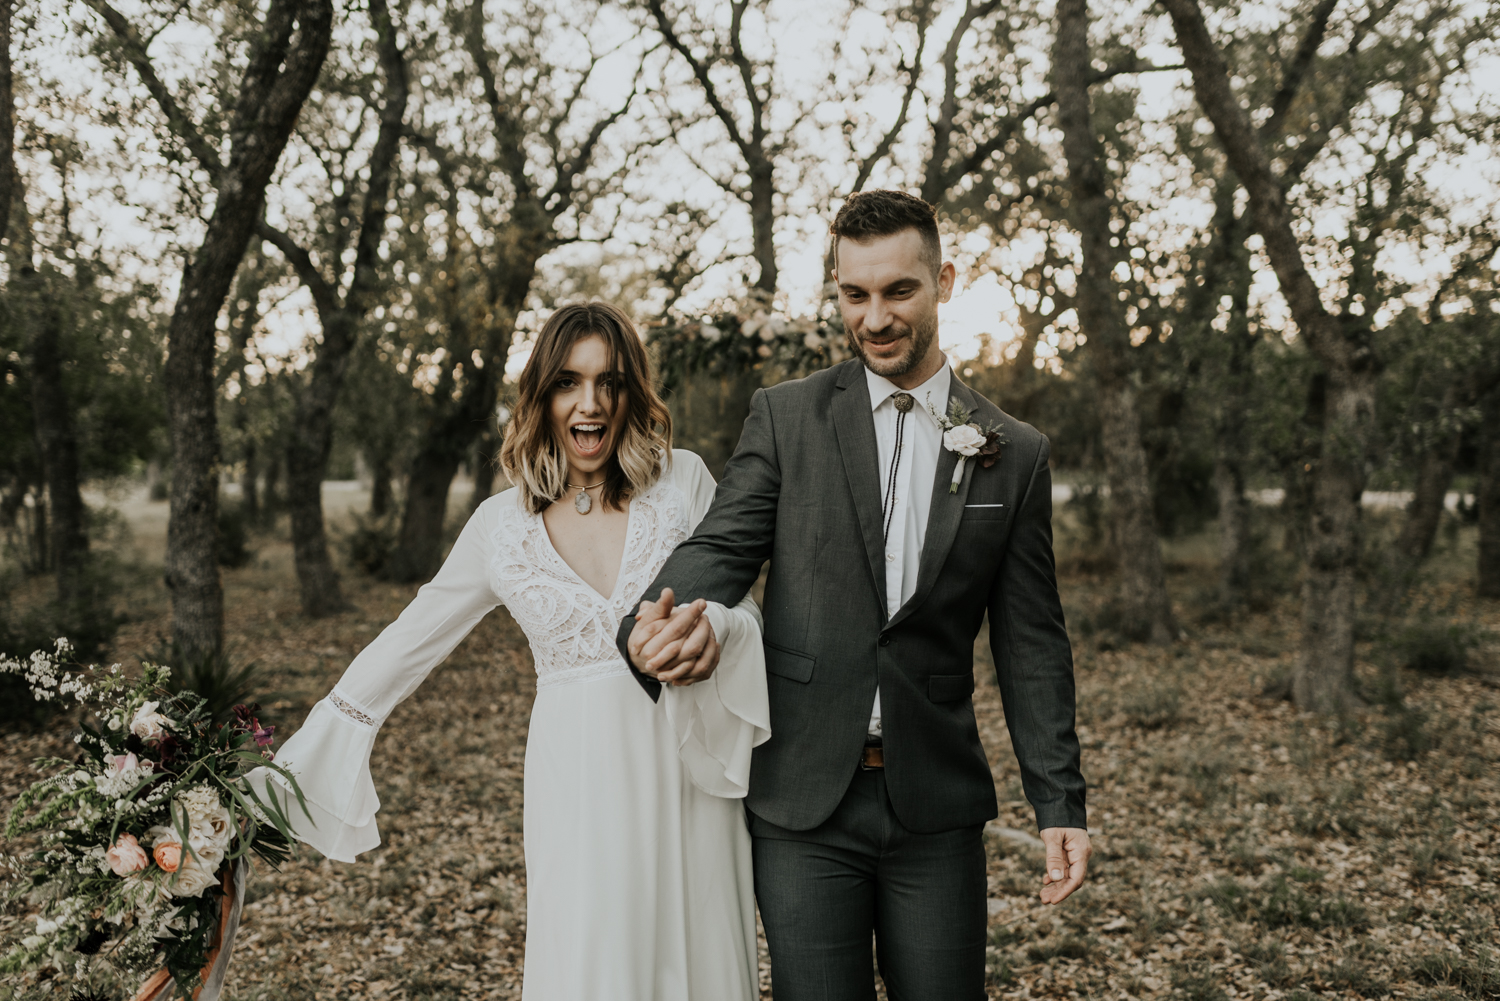 Intimate Vow Renewal in the Texas Hill Country